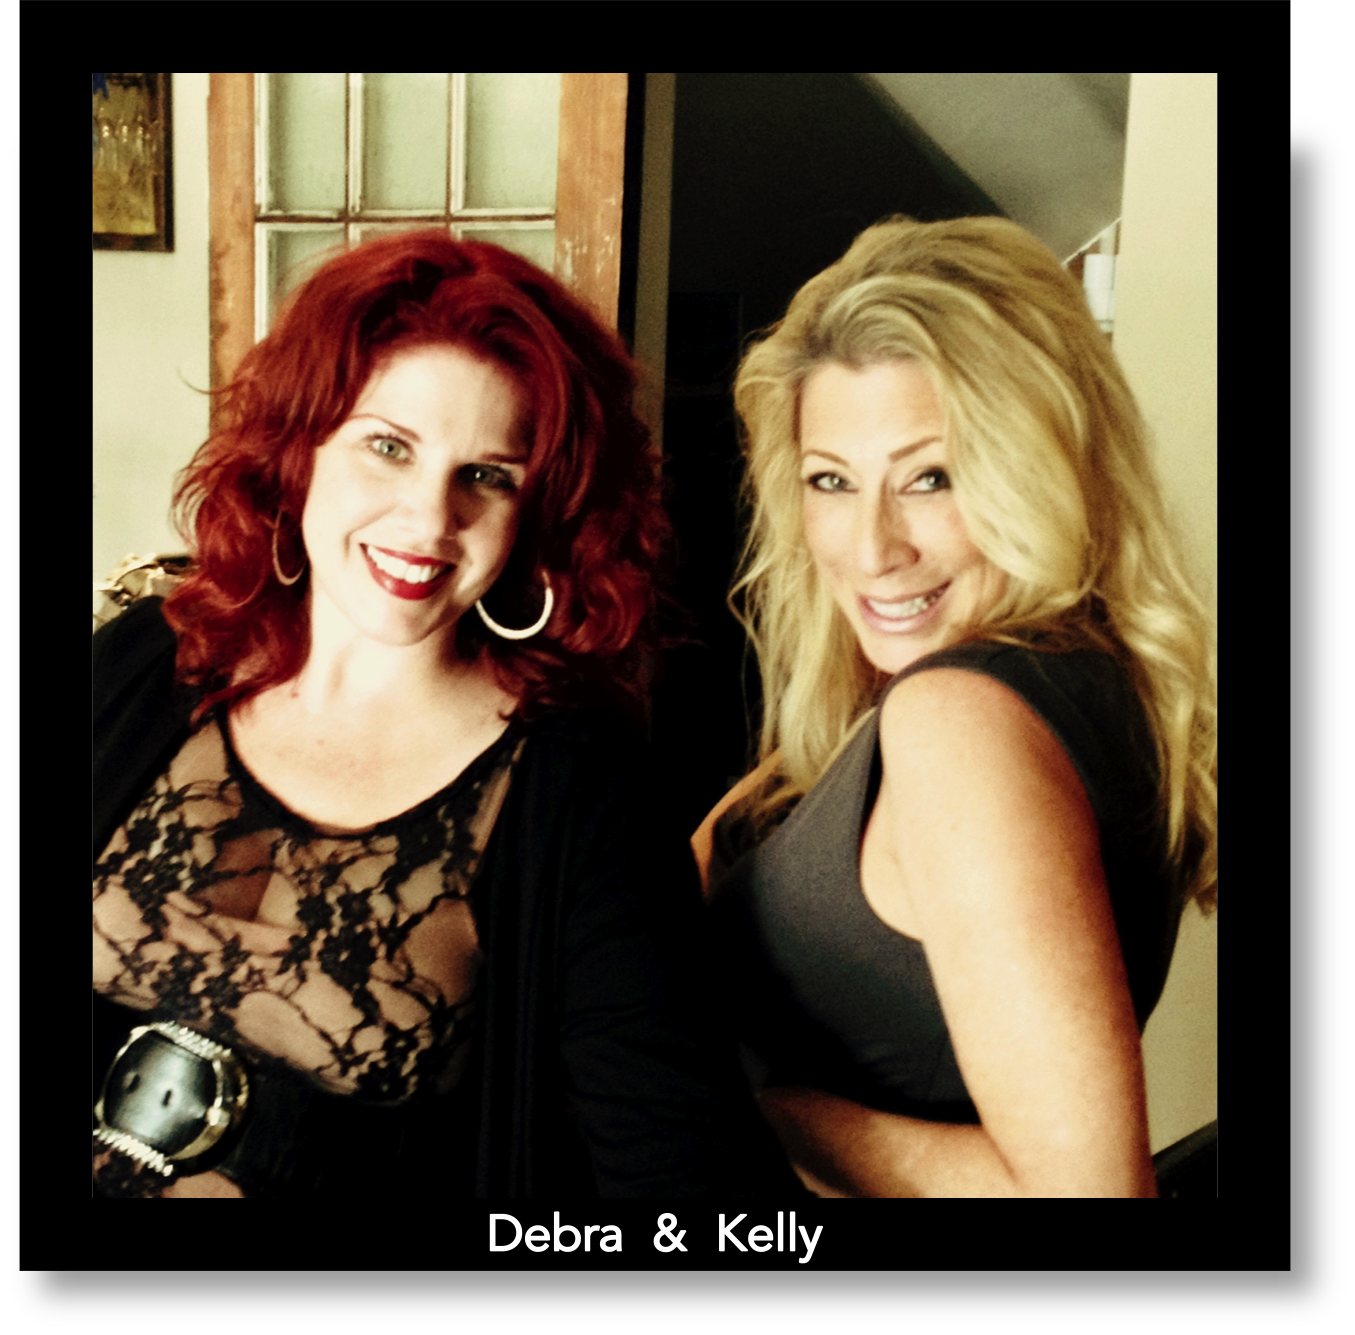 Debra and Kelly - BreveTV Border with Names